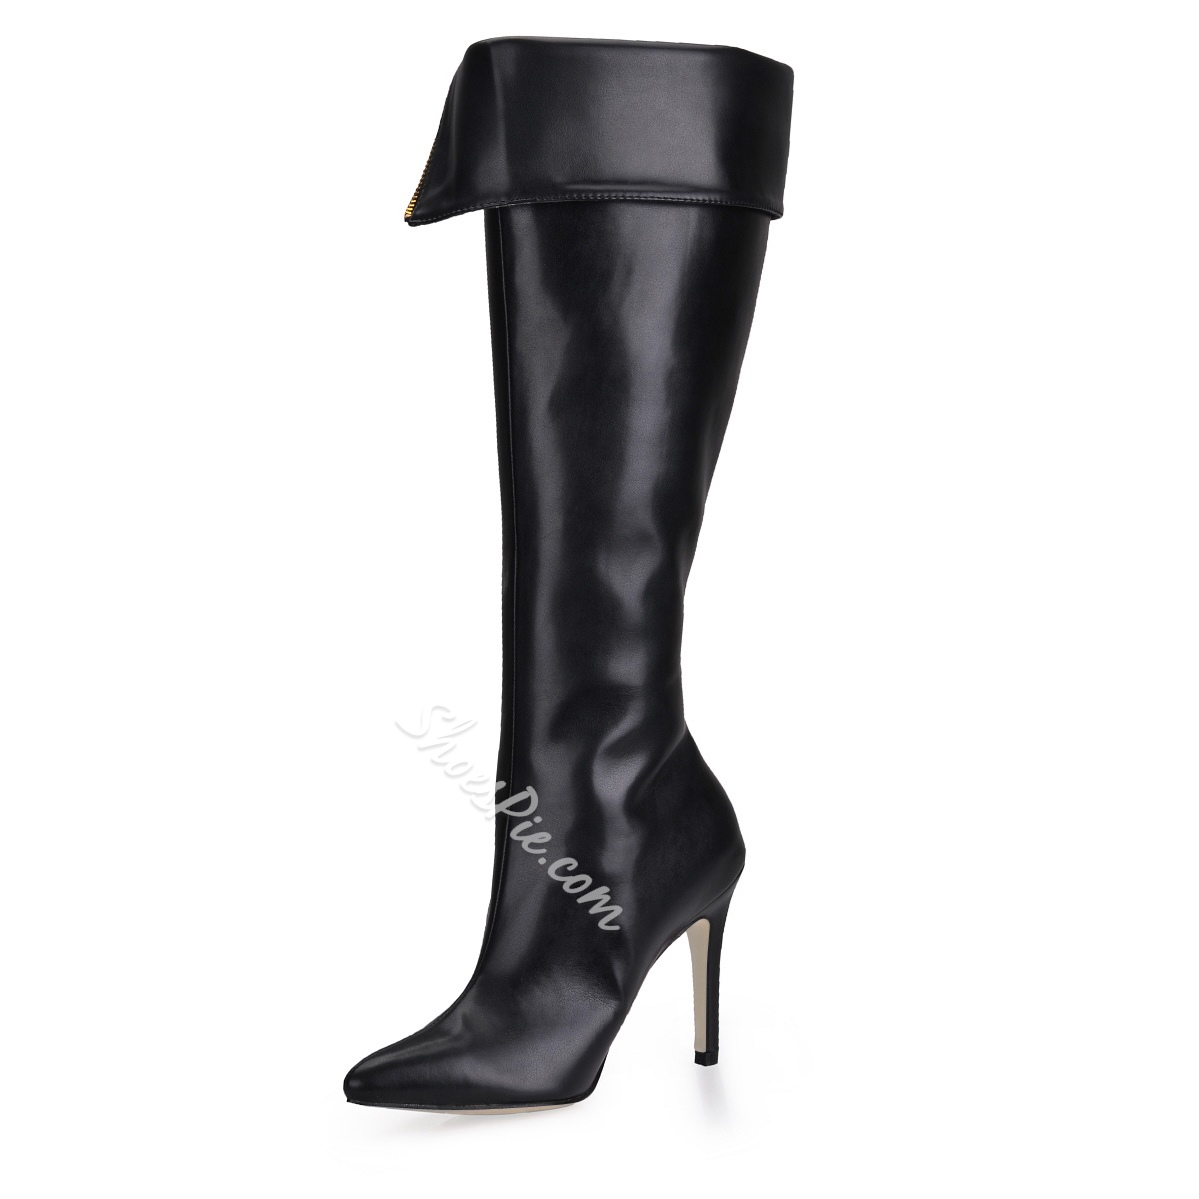 Fashion Style Stiletto Heels Closed-toe Knee High Boots